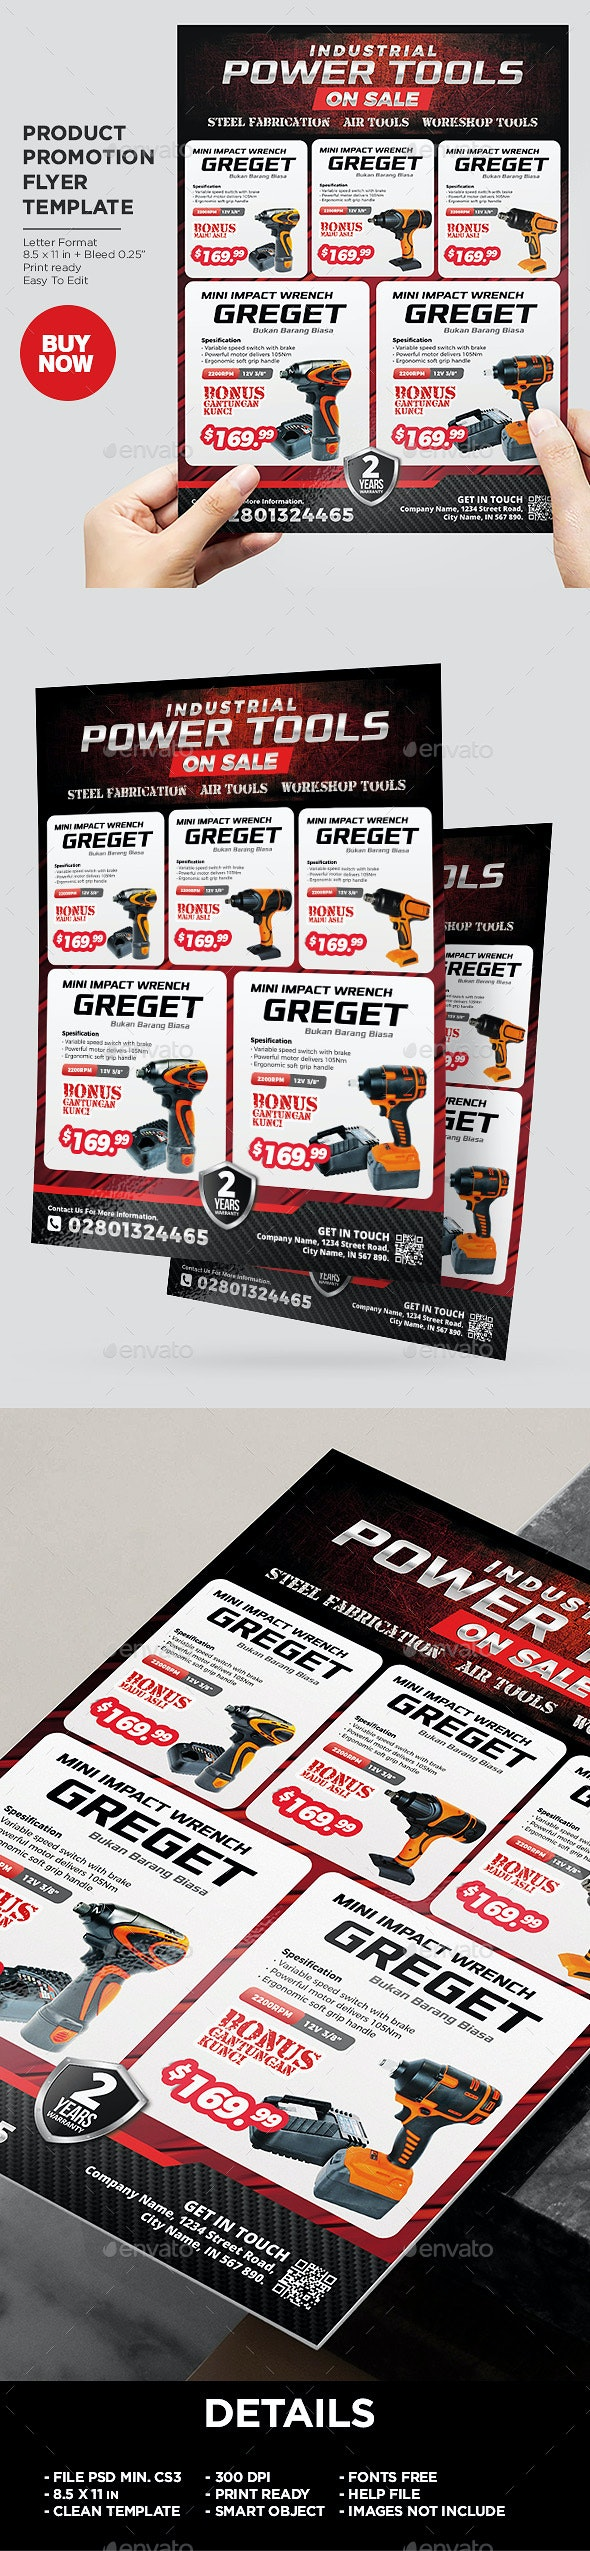 Industrial Power Tools Product Flyer Template - Commerce Flyers